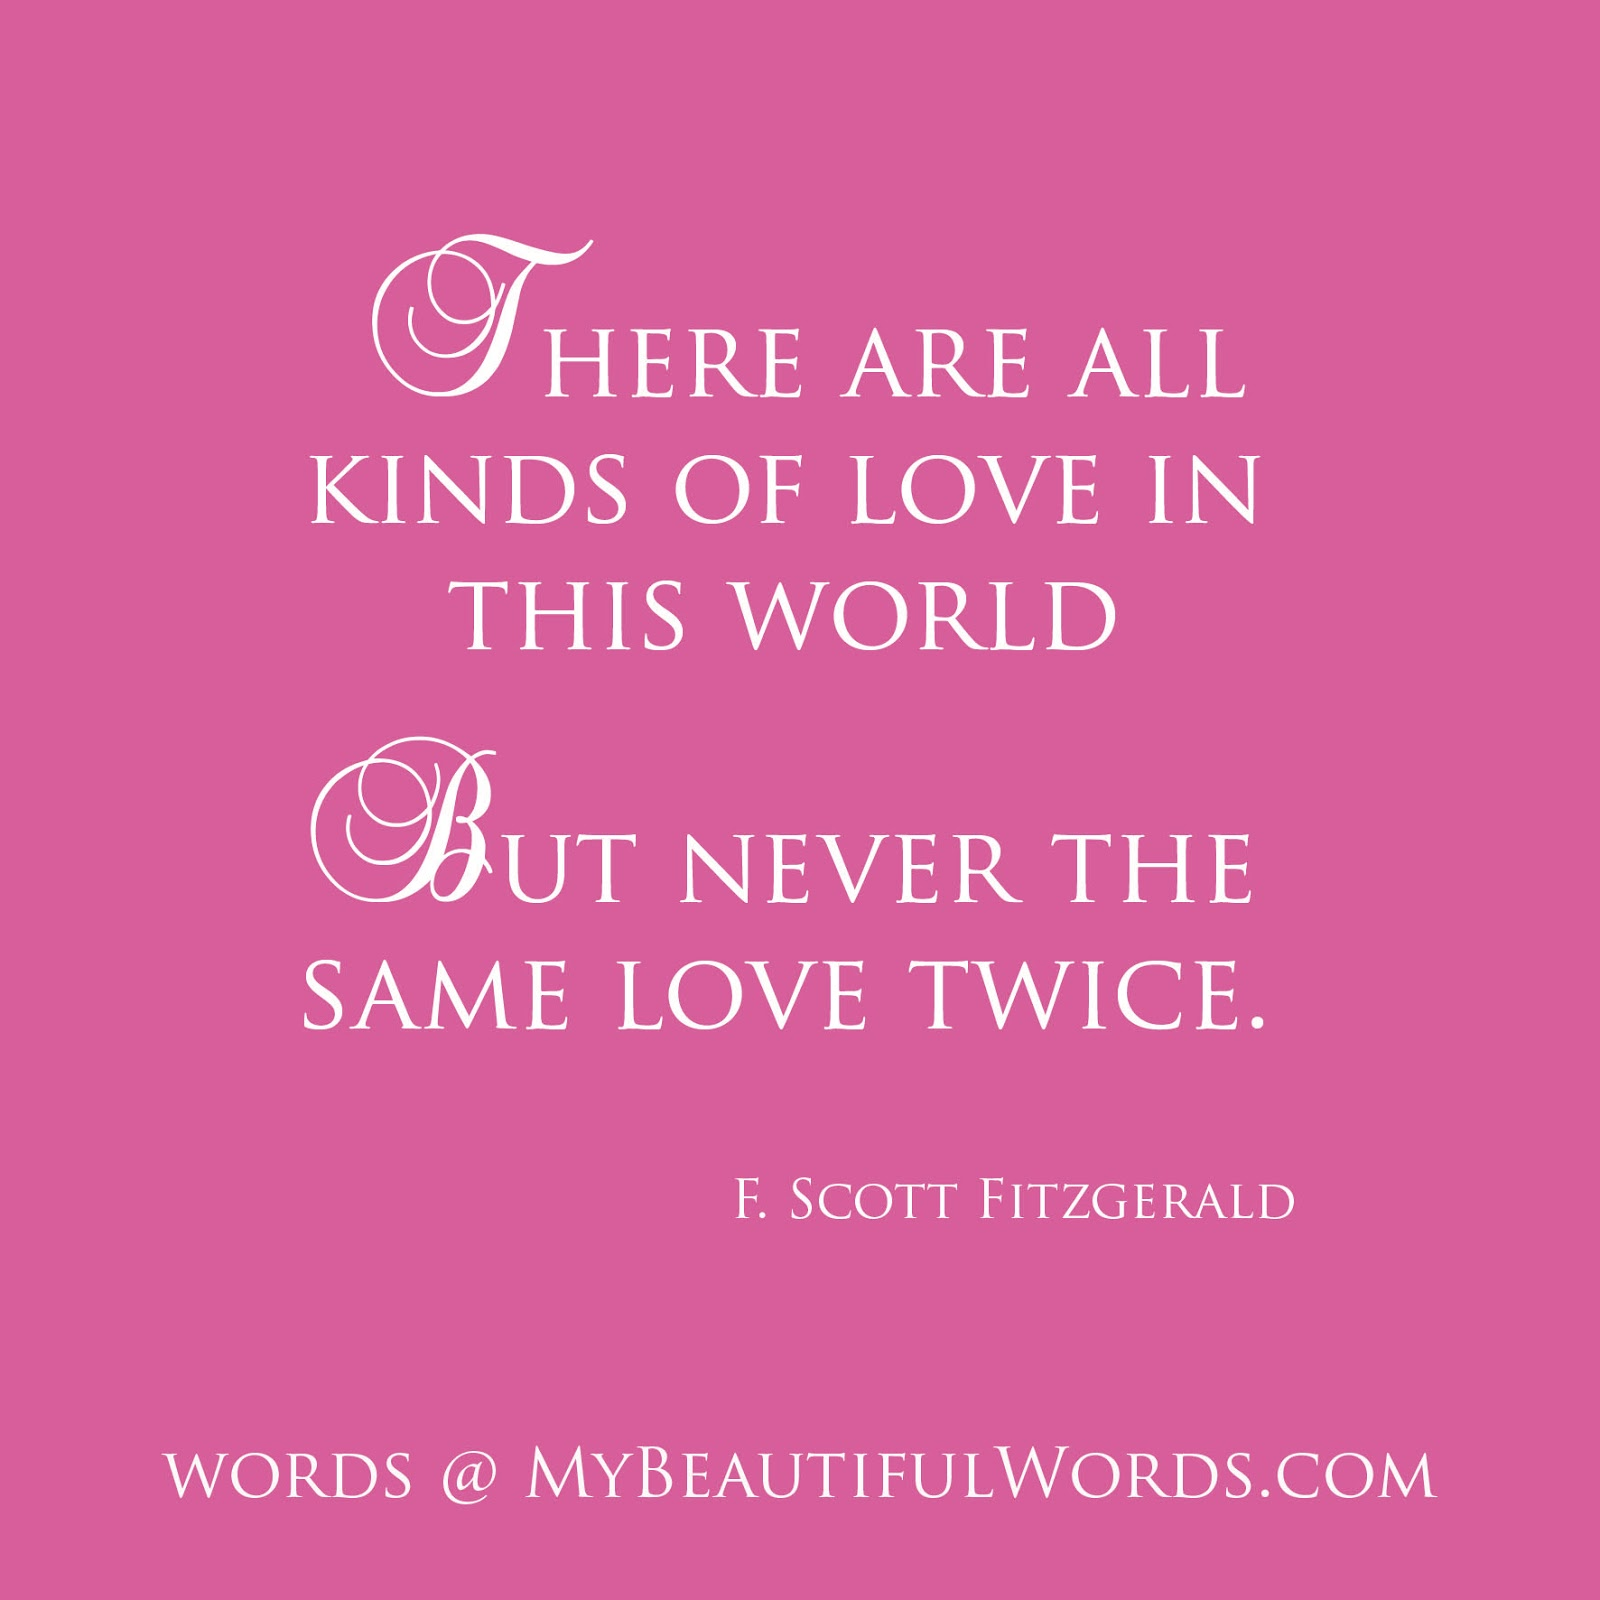 F Scott Fitzgerald Love Quote My Beautiful Words. Love.